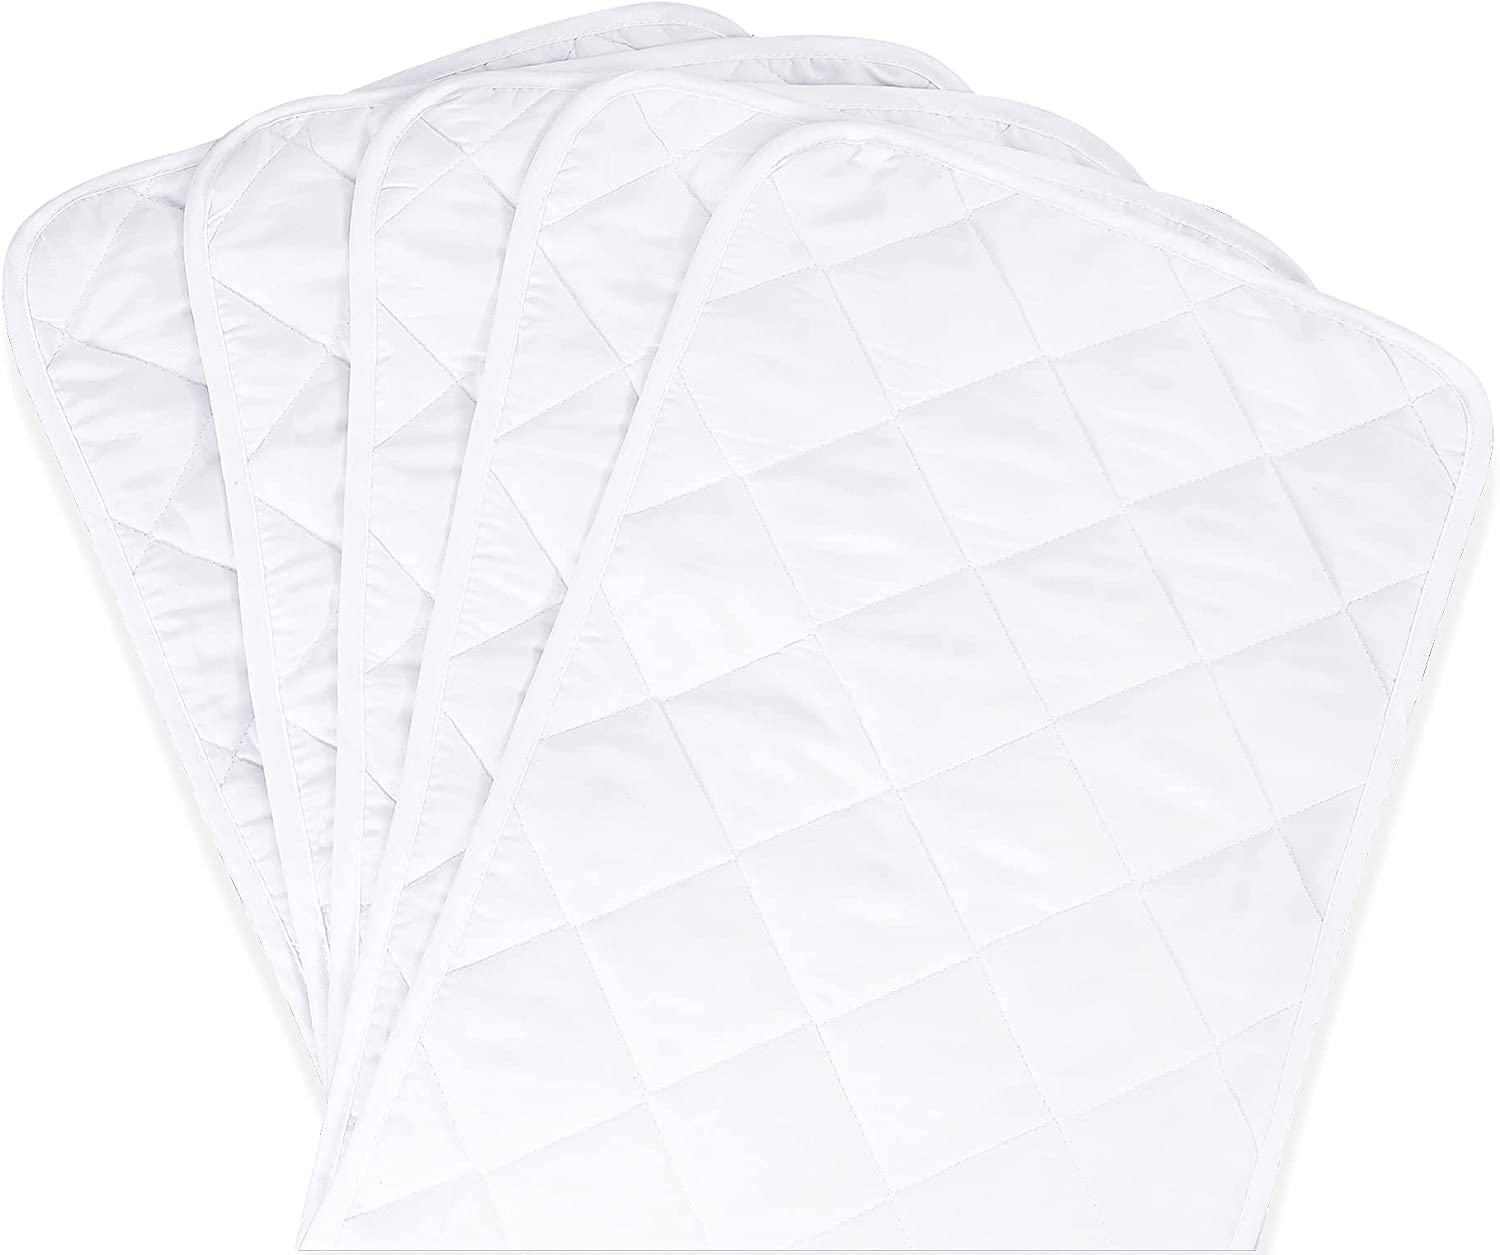 SINSAY 5 Pack Waterproof Changing Pad Liners, Size 27'' x 13'' Portable Diaper Pads, Soft Breathable & Noiseless Changing Table Cover Liners, Washable & Reusable Changing Table Pads